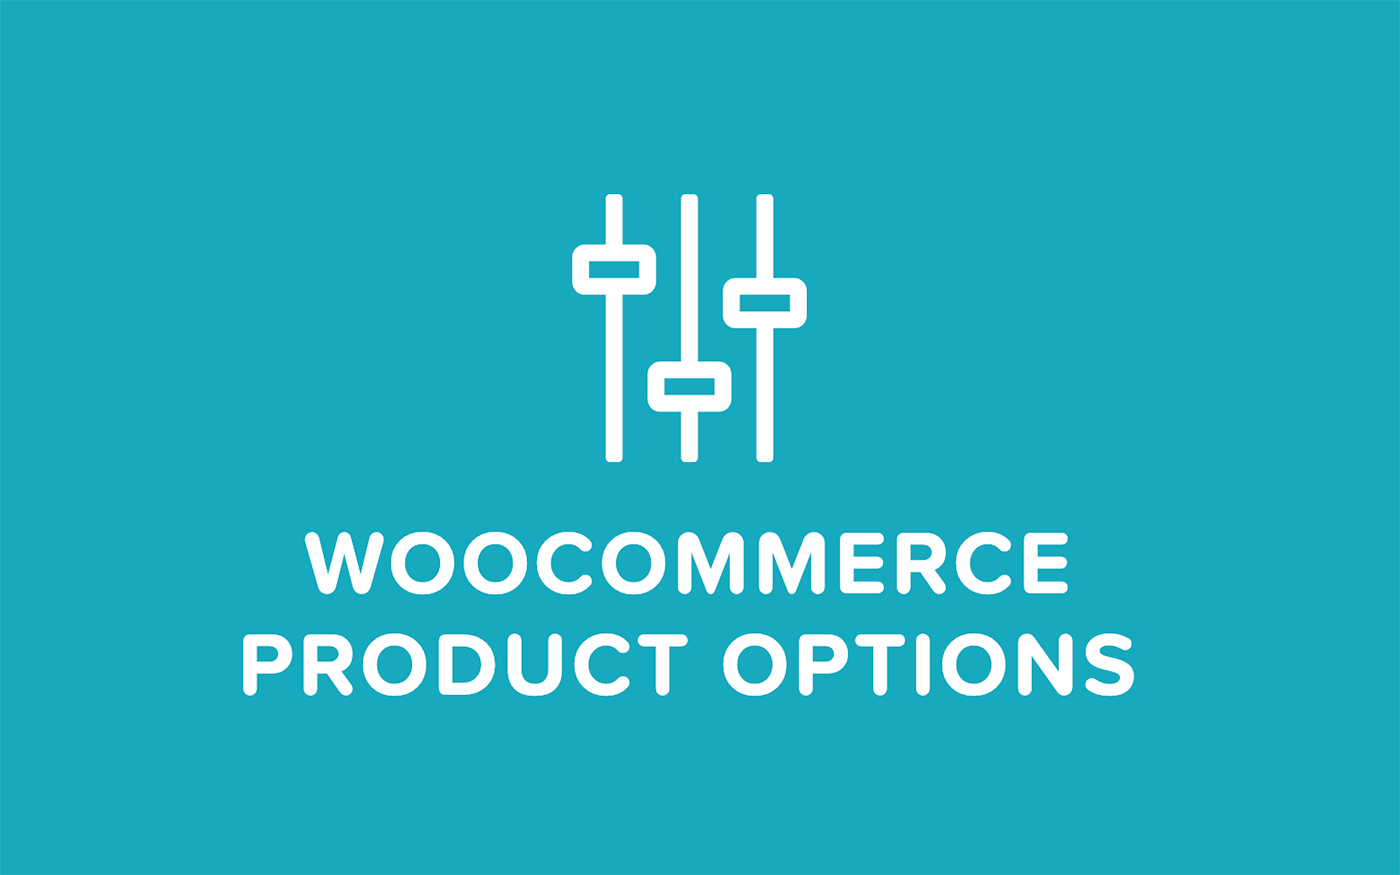 5 WooCommerce Product Options To Increase Profits